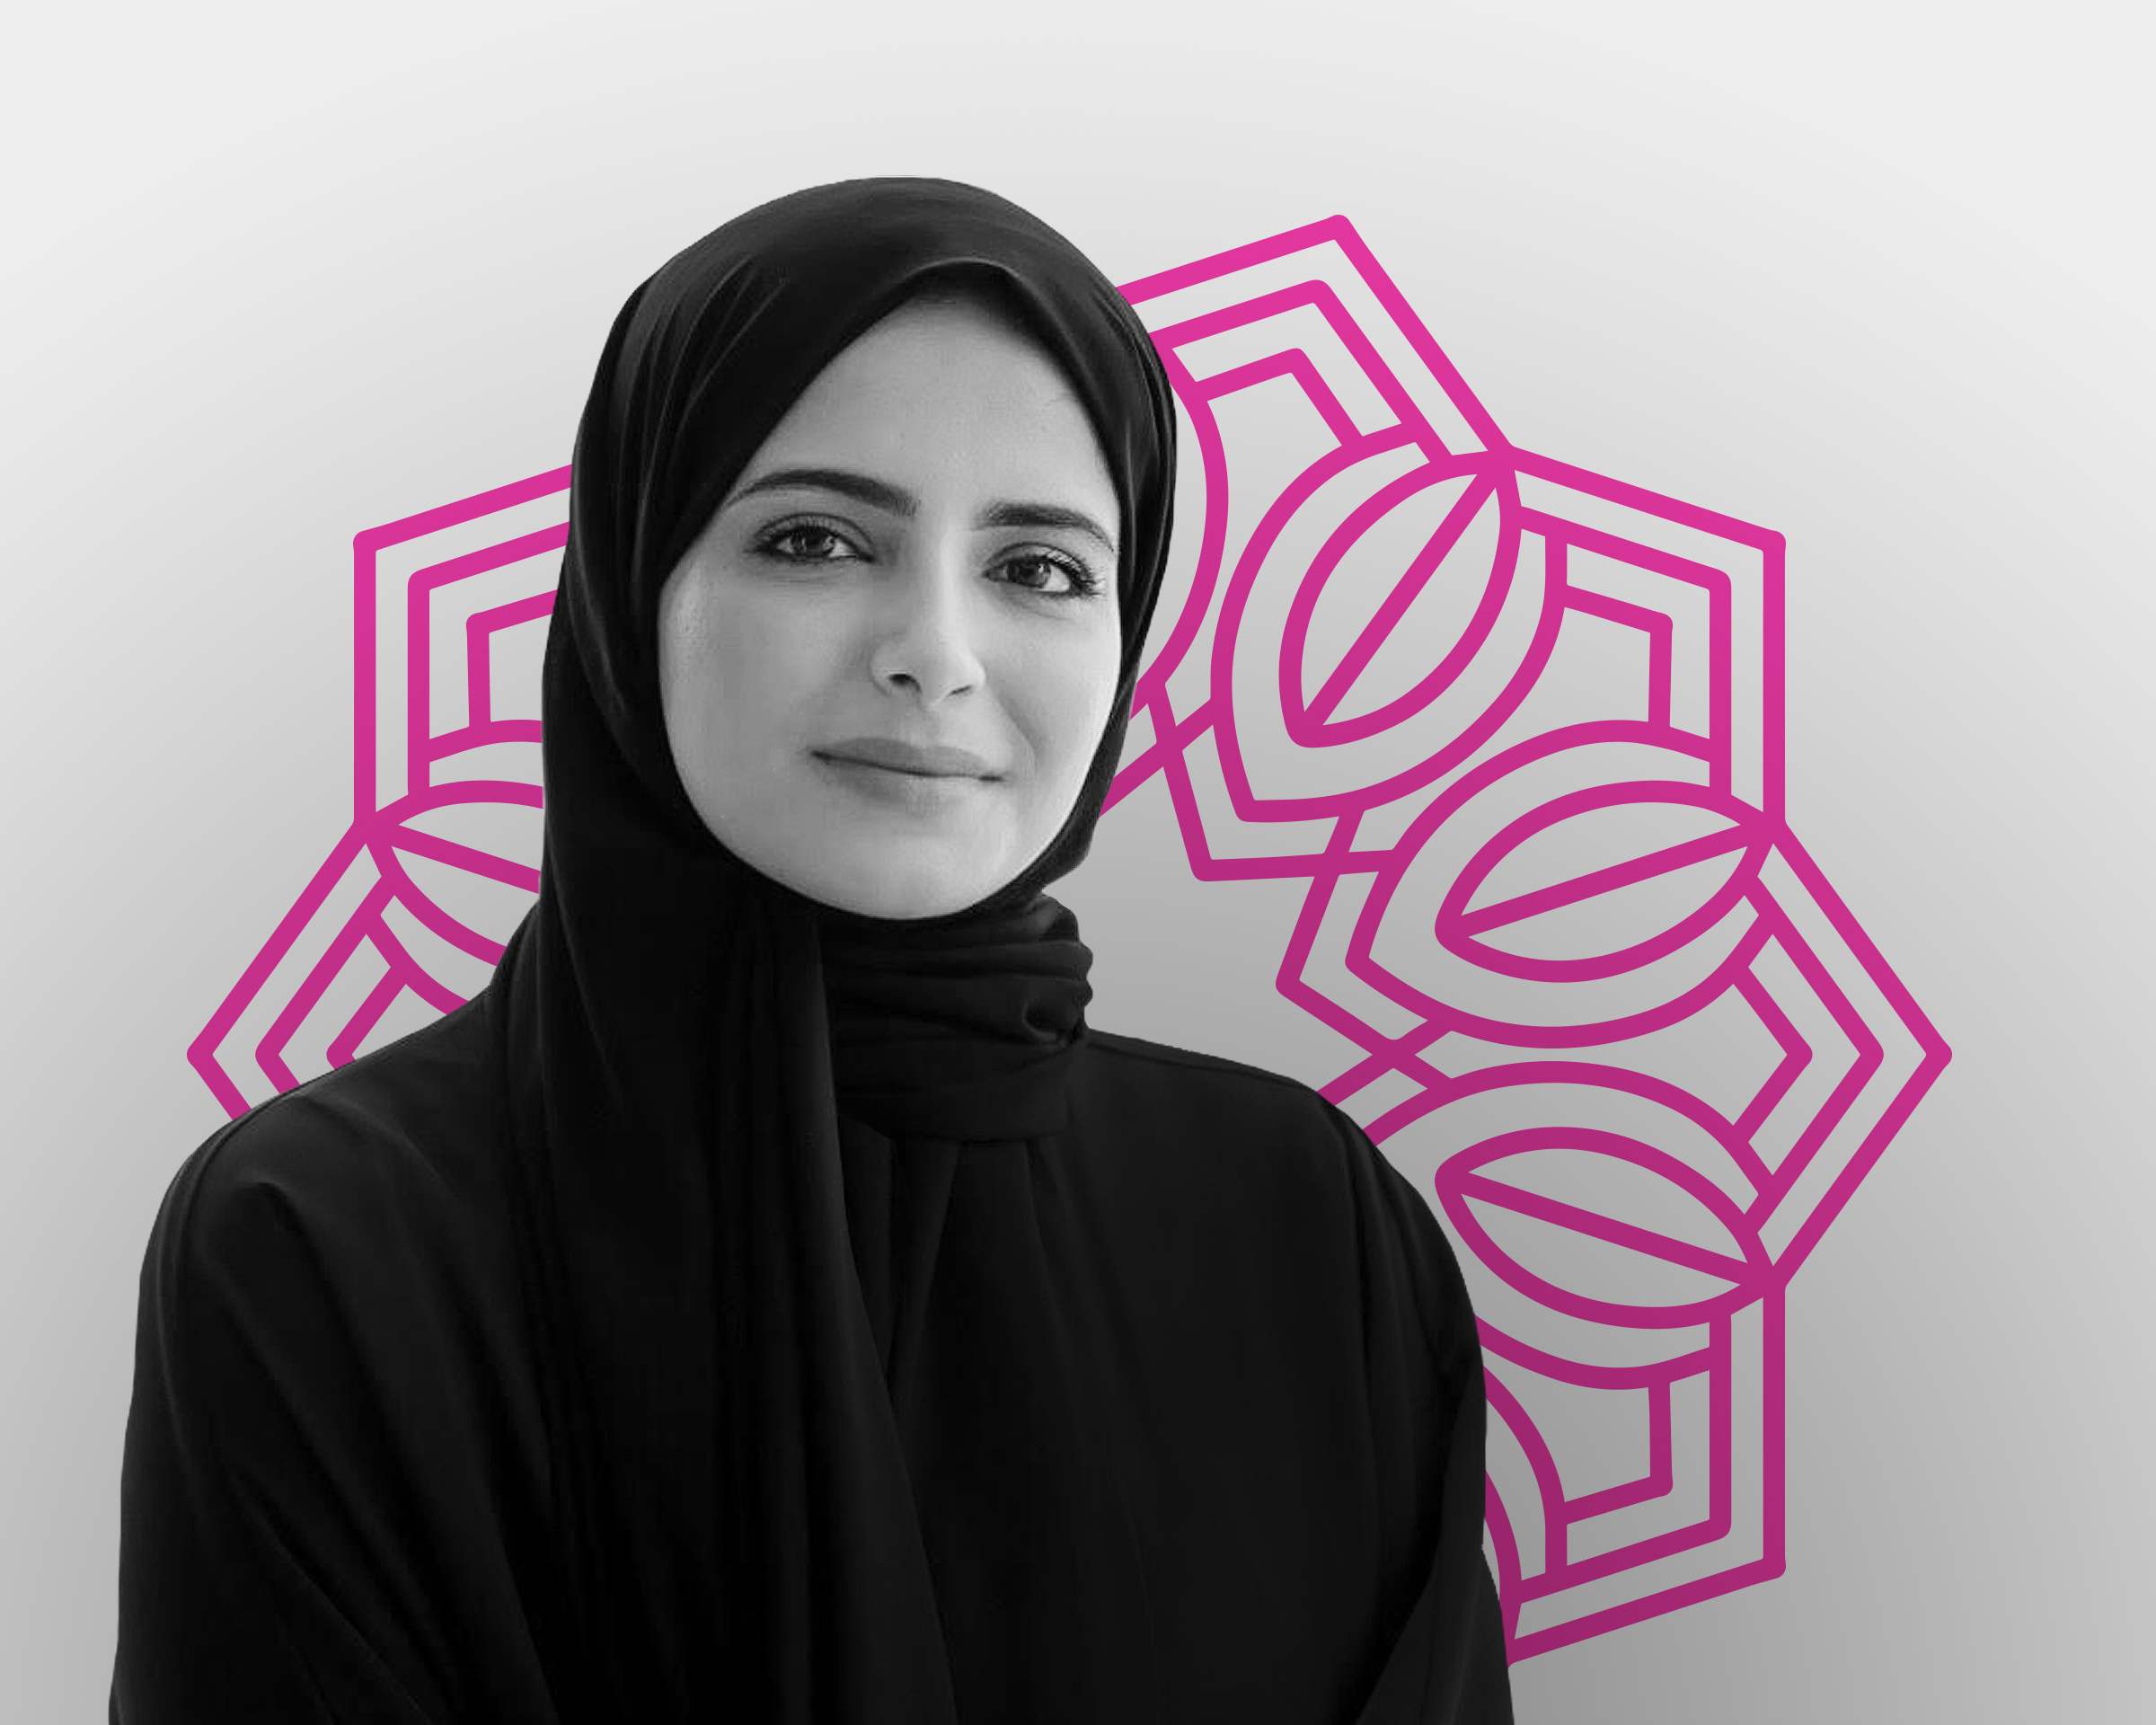 Maryam A. Al-Hajri - 23 years oldMaster's in politics and International RelationsA Researcher and A Teacher Assistant at Doha Institute for Graduate StudiesActivist and Intersectional Feminist